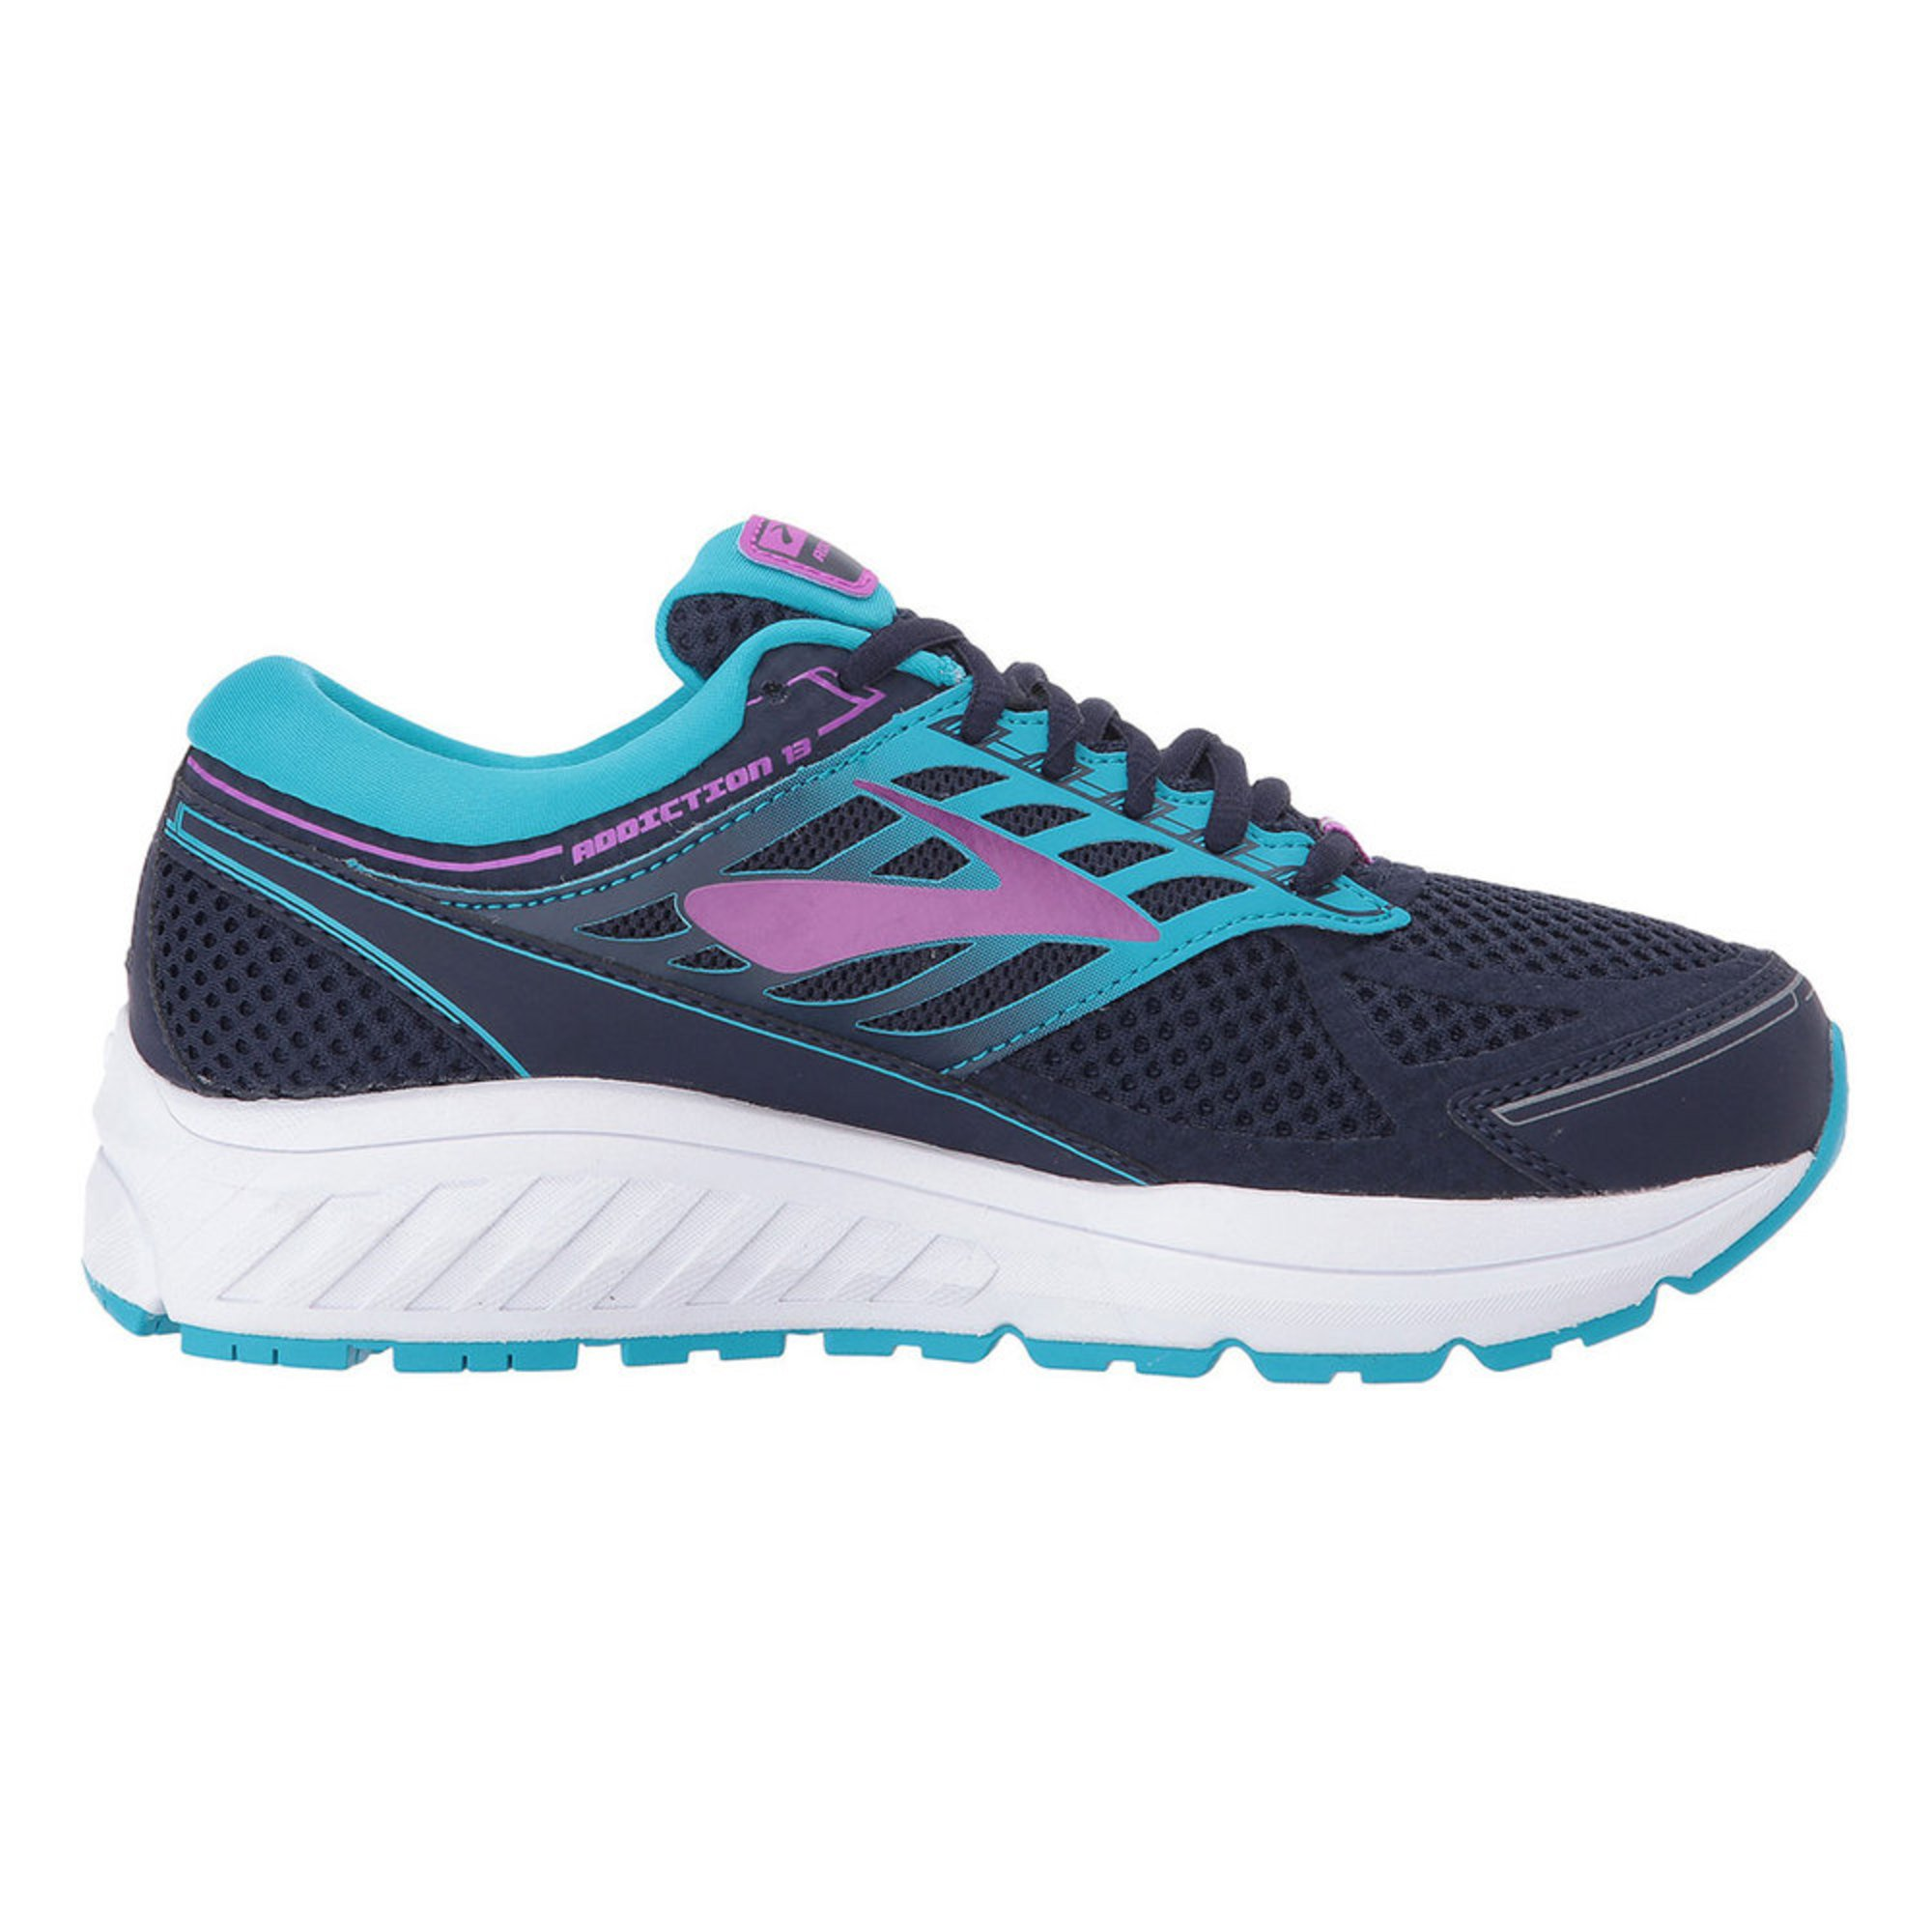 e2cdecf5f722e Brooks Women s Addiction 13 Running Shoe